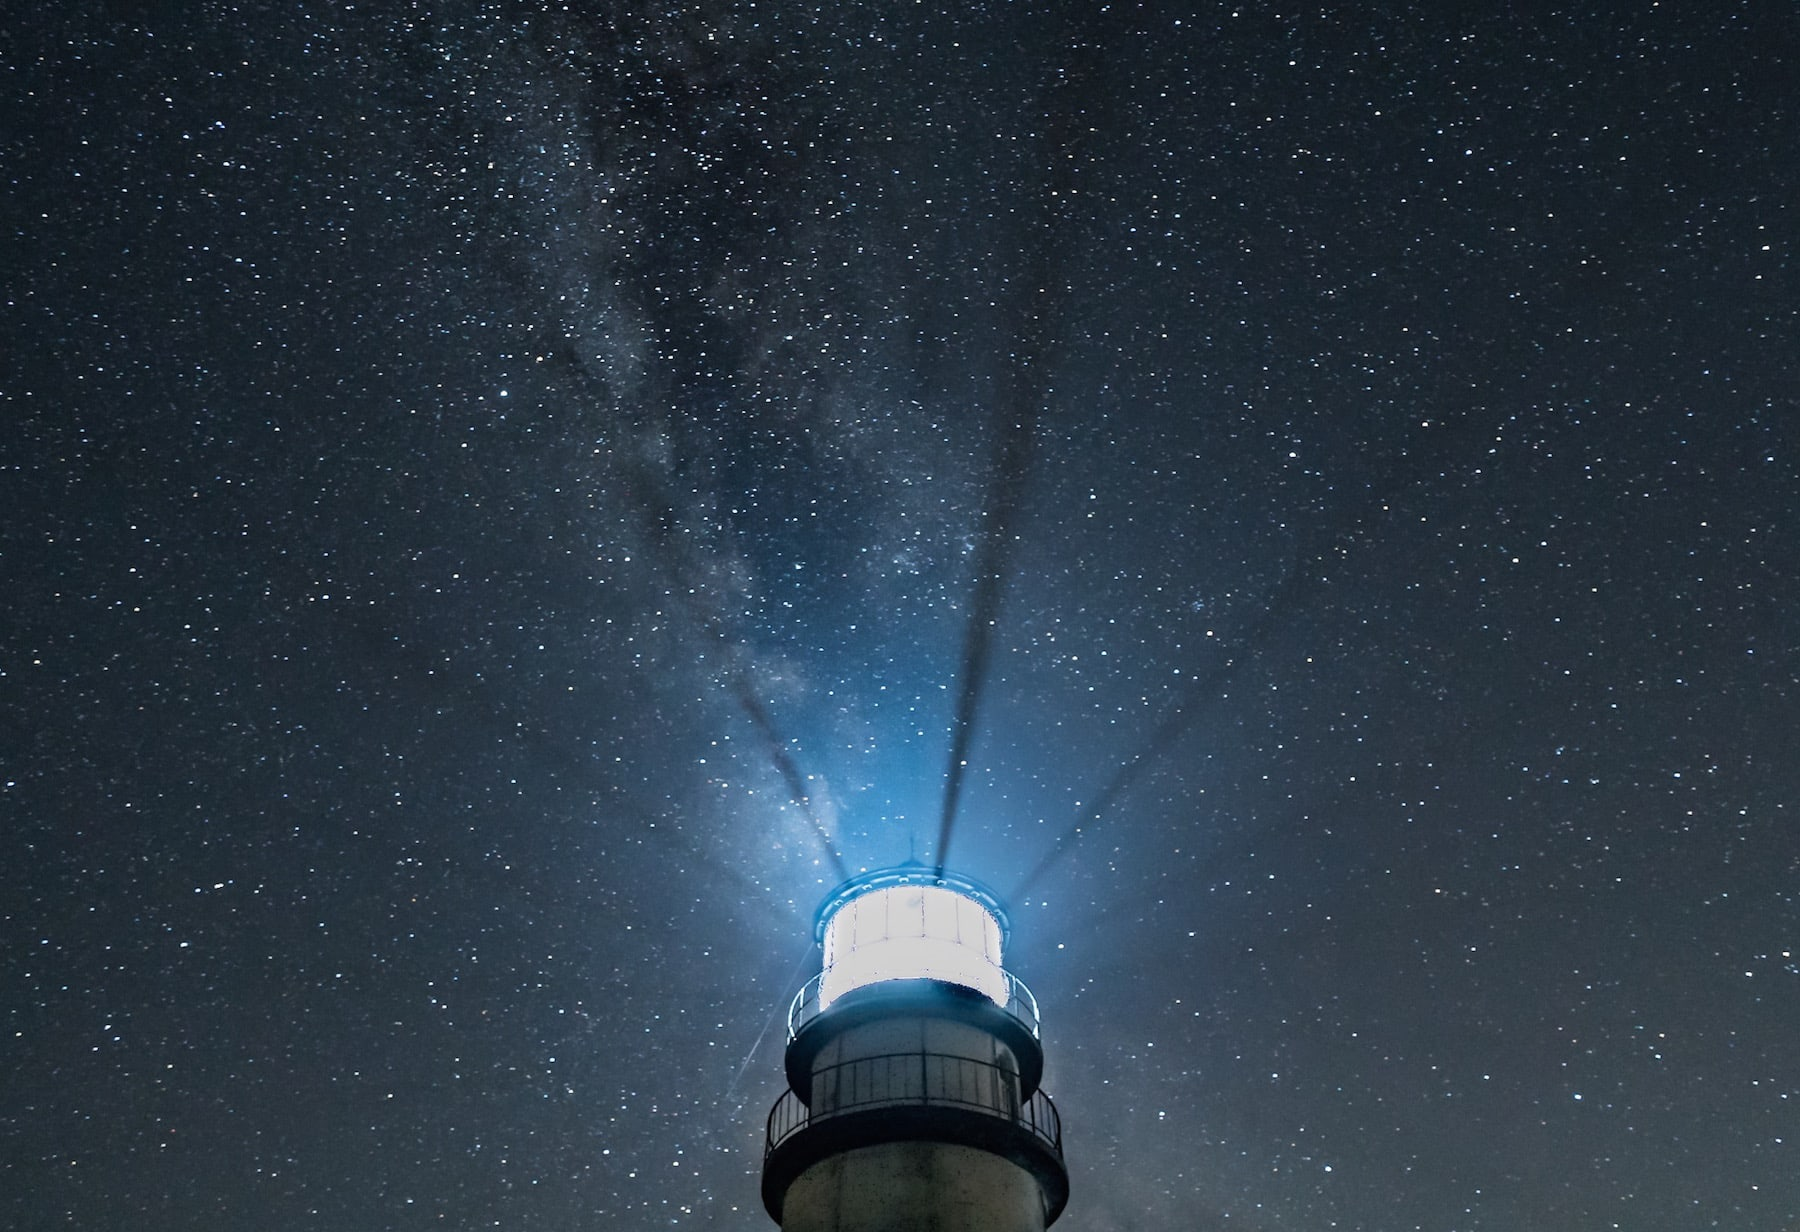 Lighthouse at night with radiating beams and starry sky with Milky Way